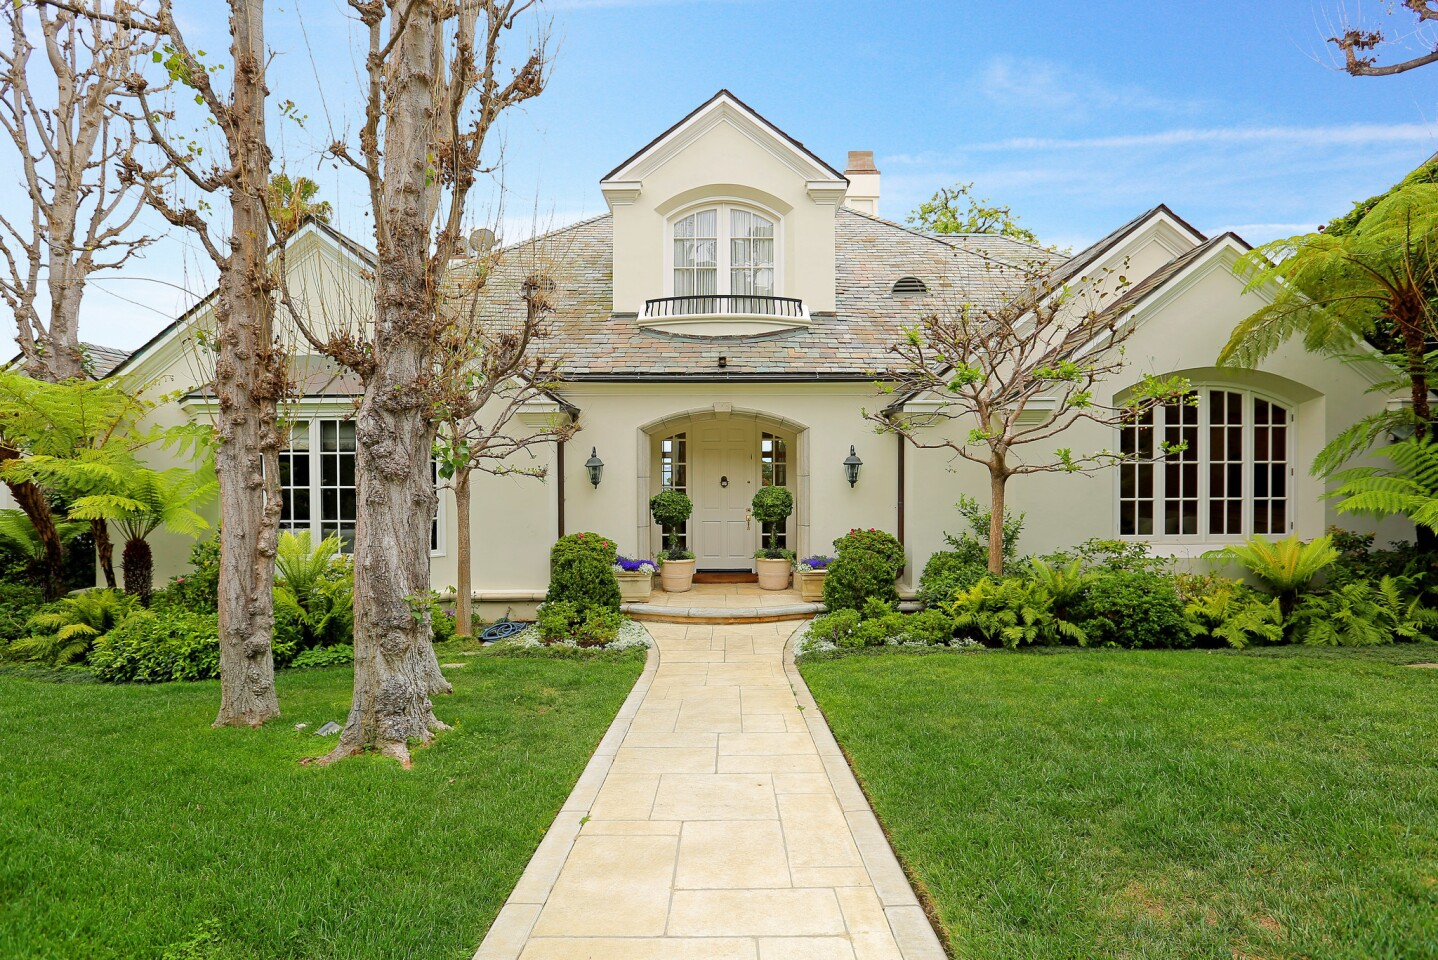 Melissa Rivers' East Coast-inspired Traditional home sits on about a third of an acre in Pacific Palisades. It's for sale at $6.25 million.